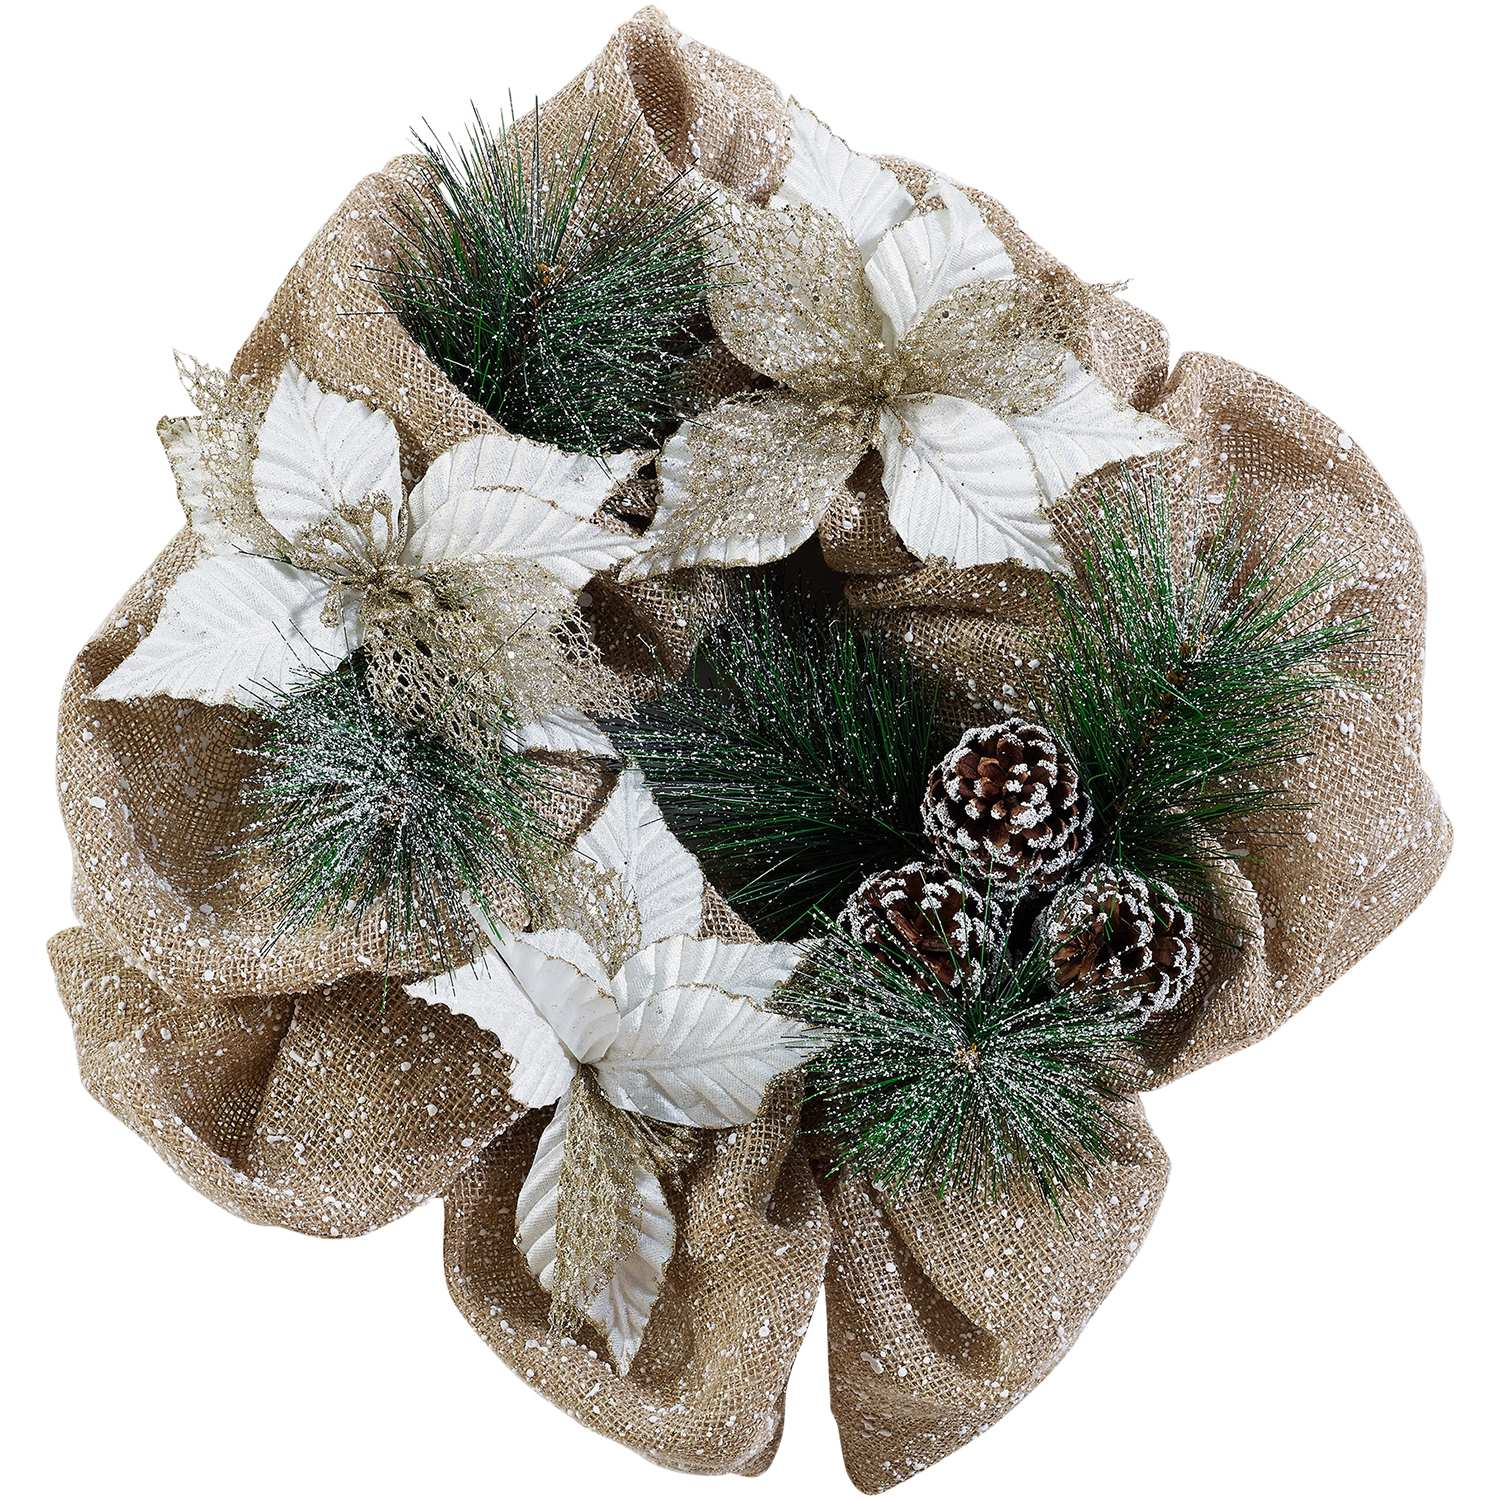 Holiday Time 20-Inch Mesh Wreath, Pinecone and Poinsettias with Burlap Ribbon